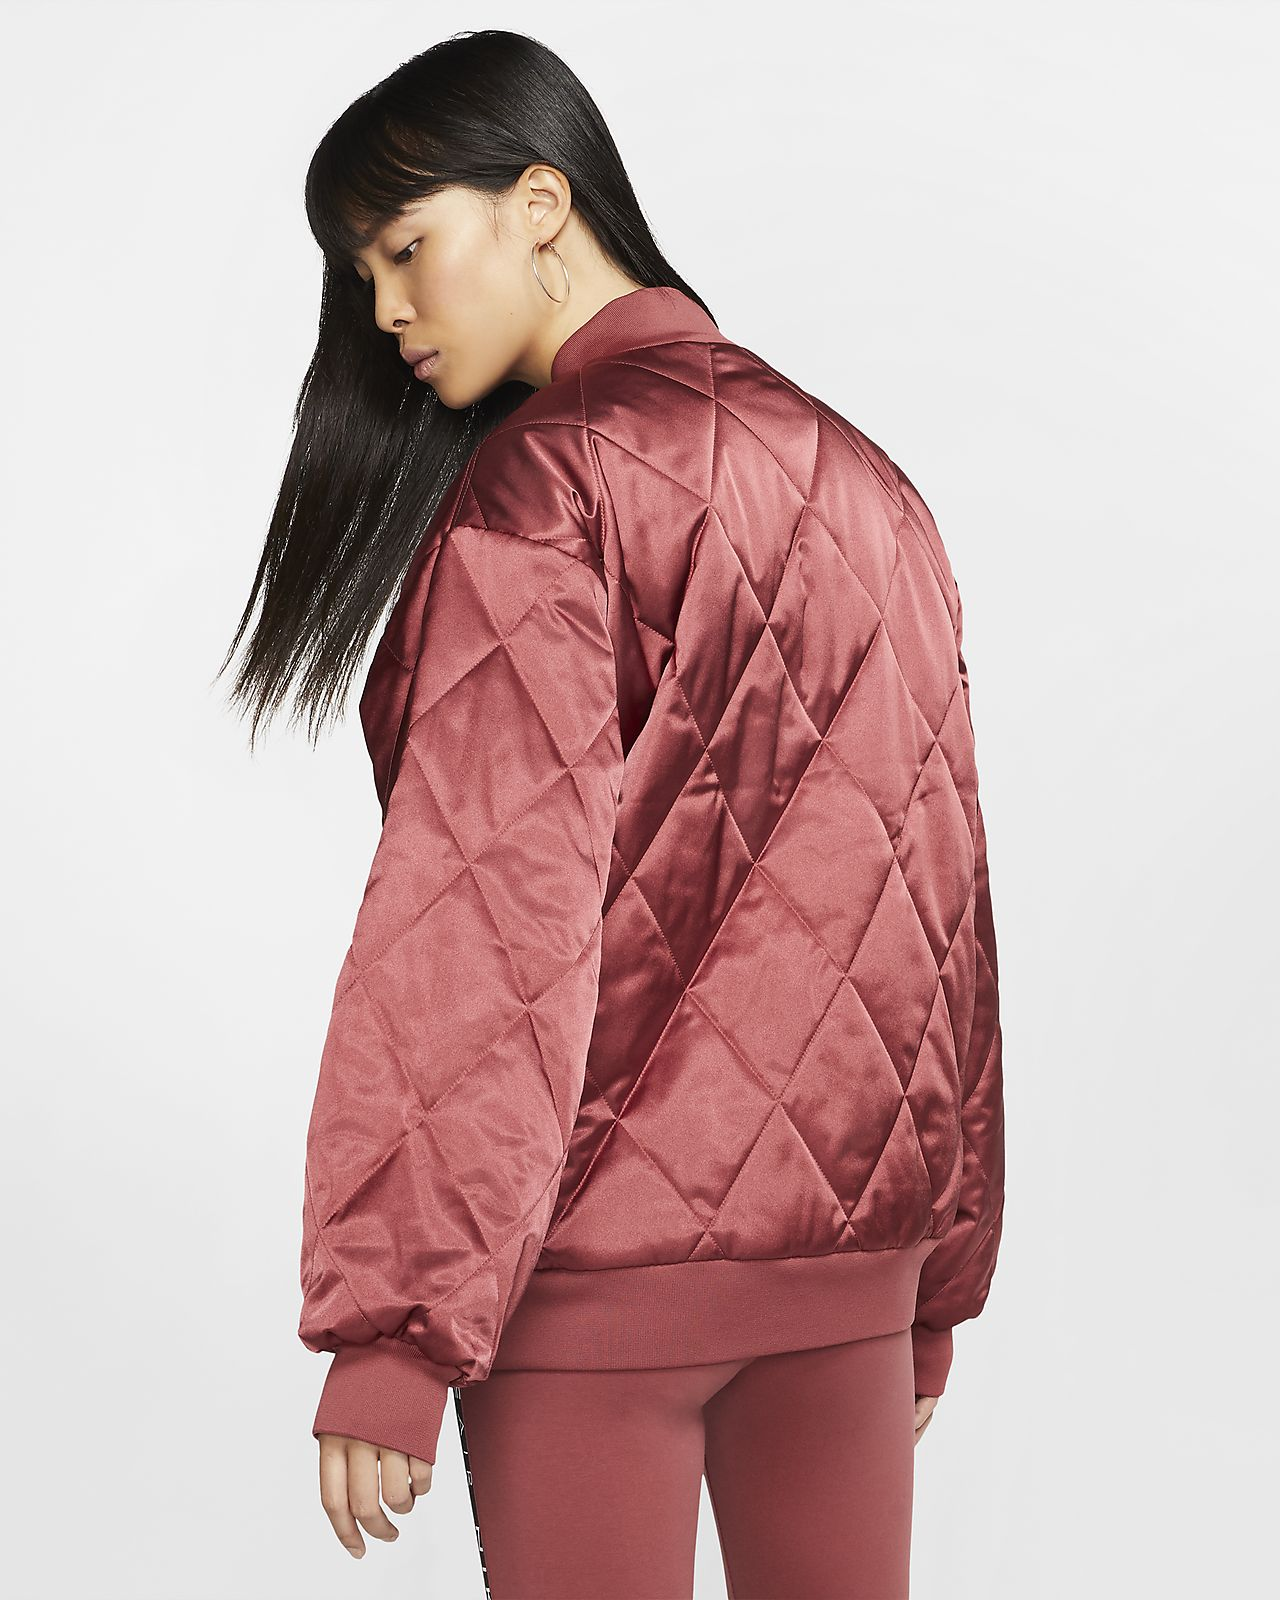 Nike Air Women's Satin Jacket